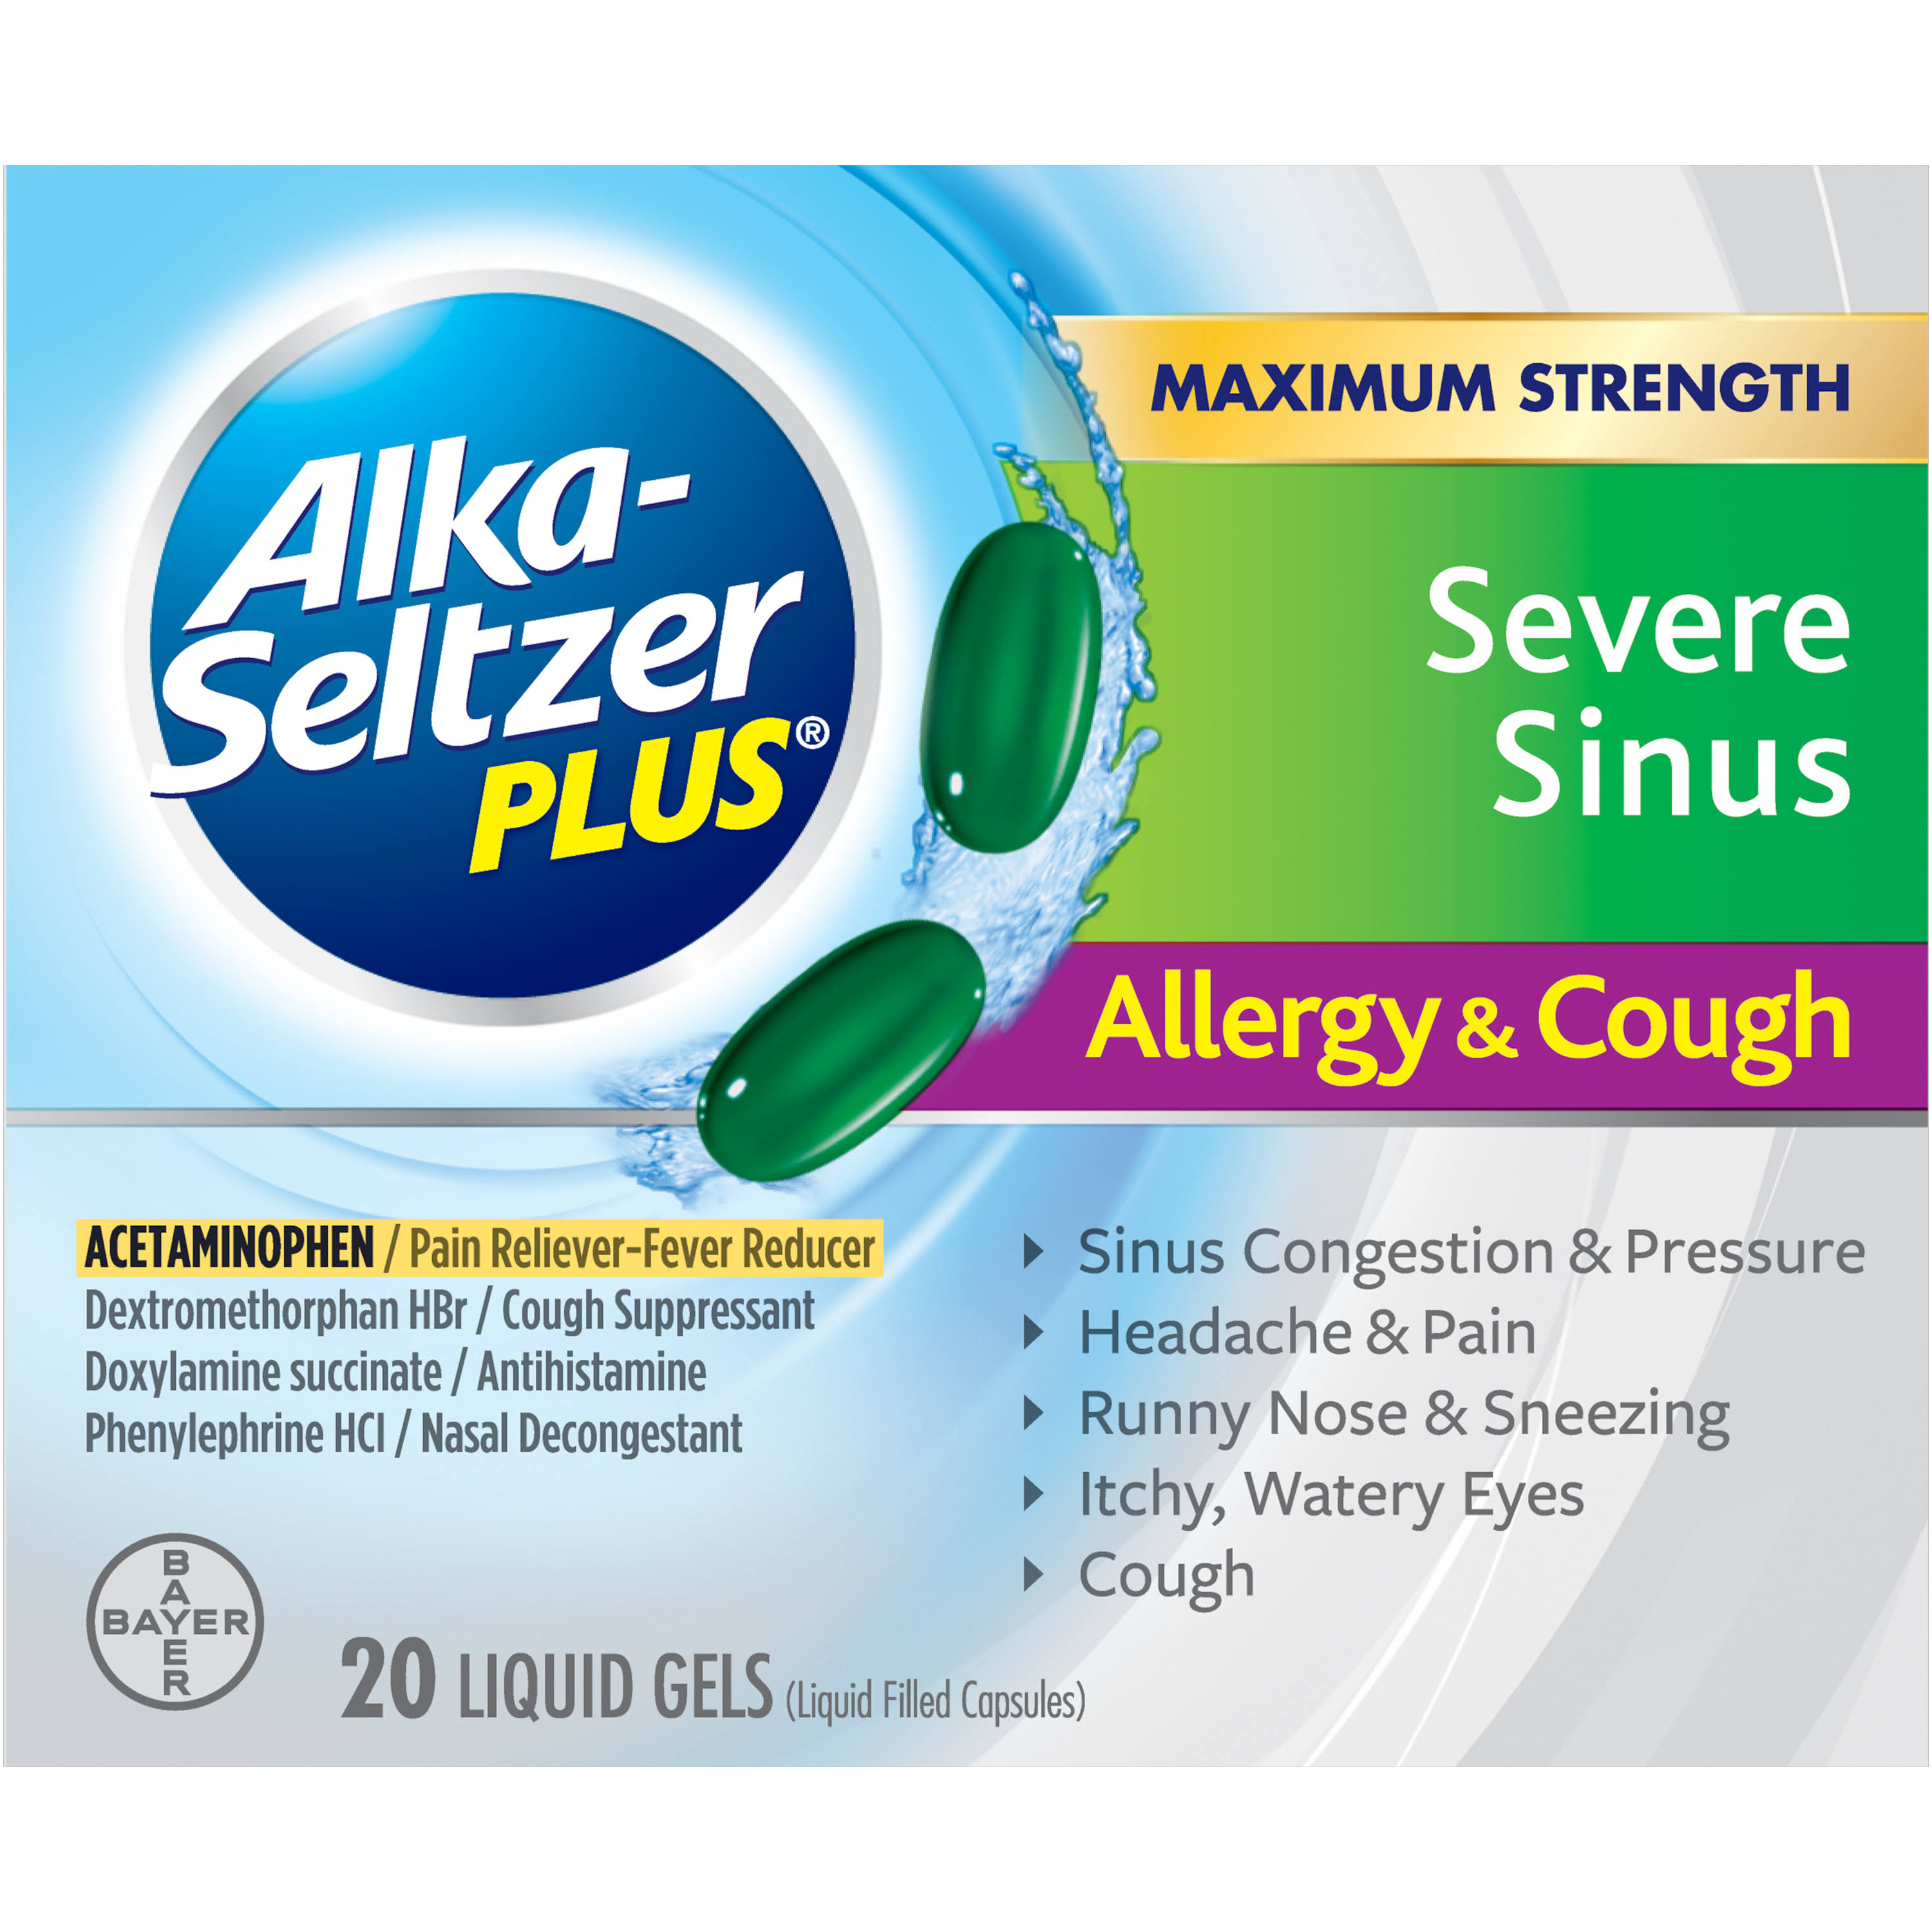 Bayer Alka-Seltzer Plus Severe Sinus Congestion Allergy and Cough Formula - 20ct